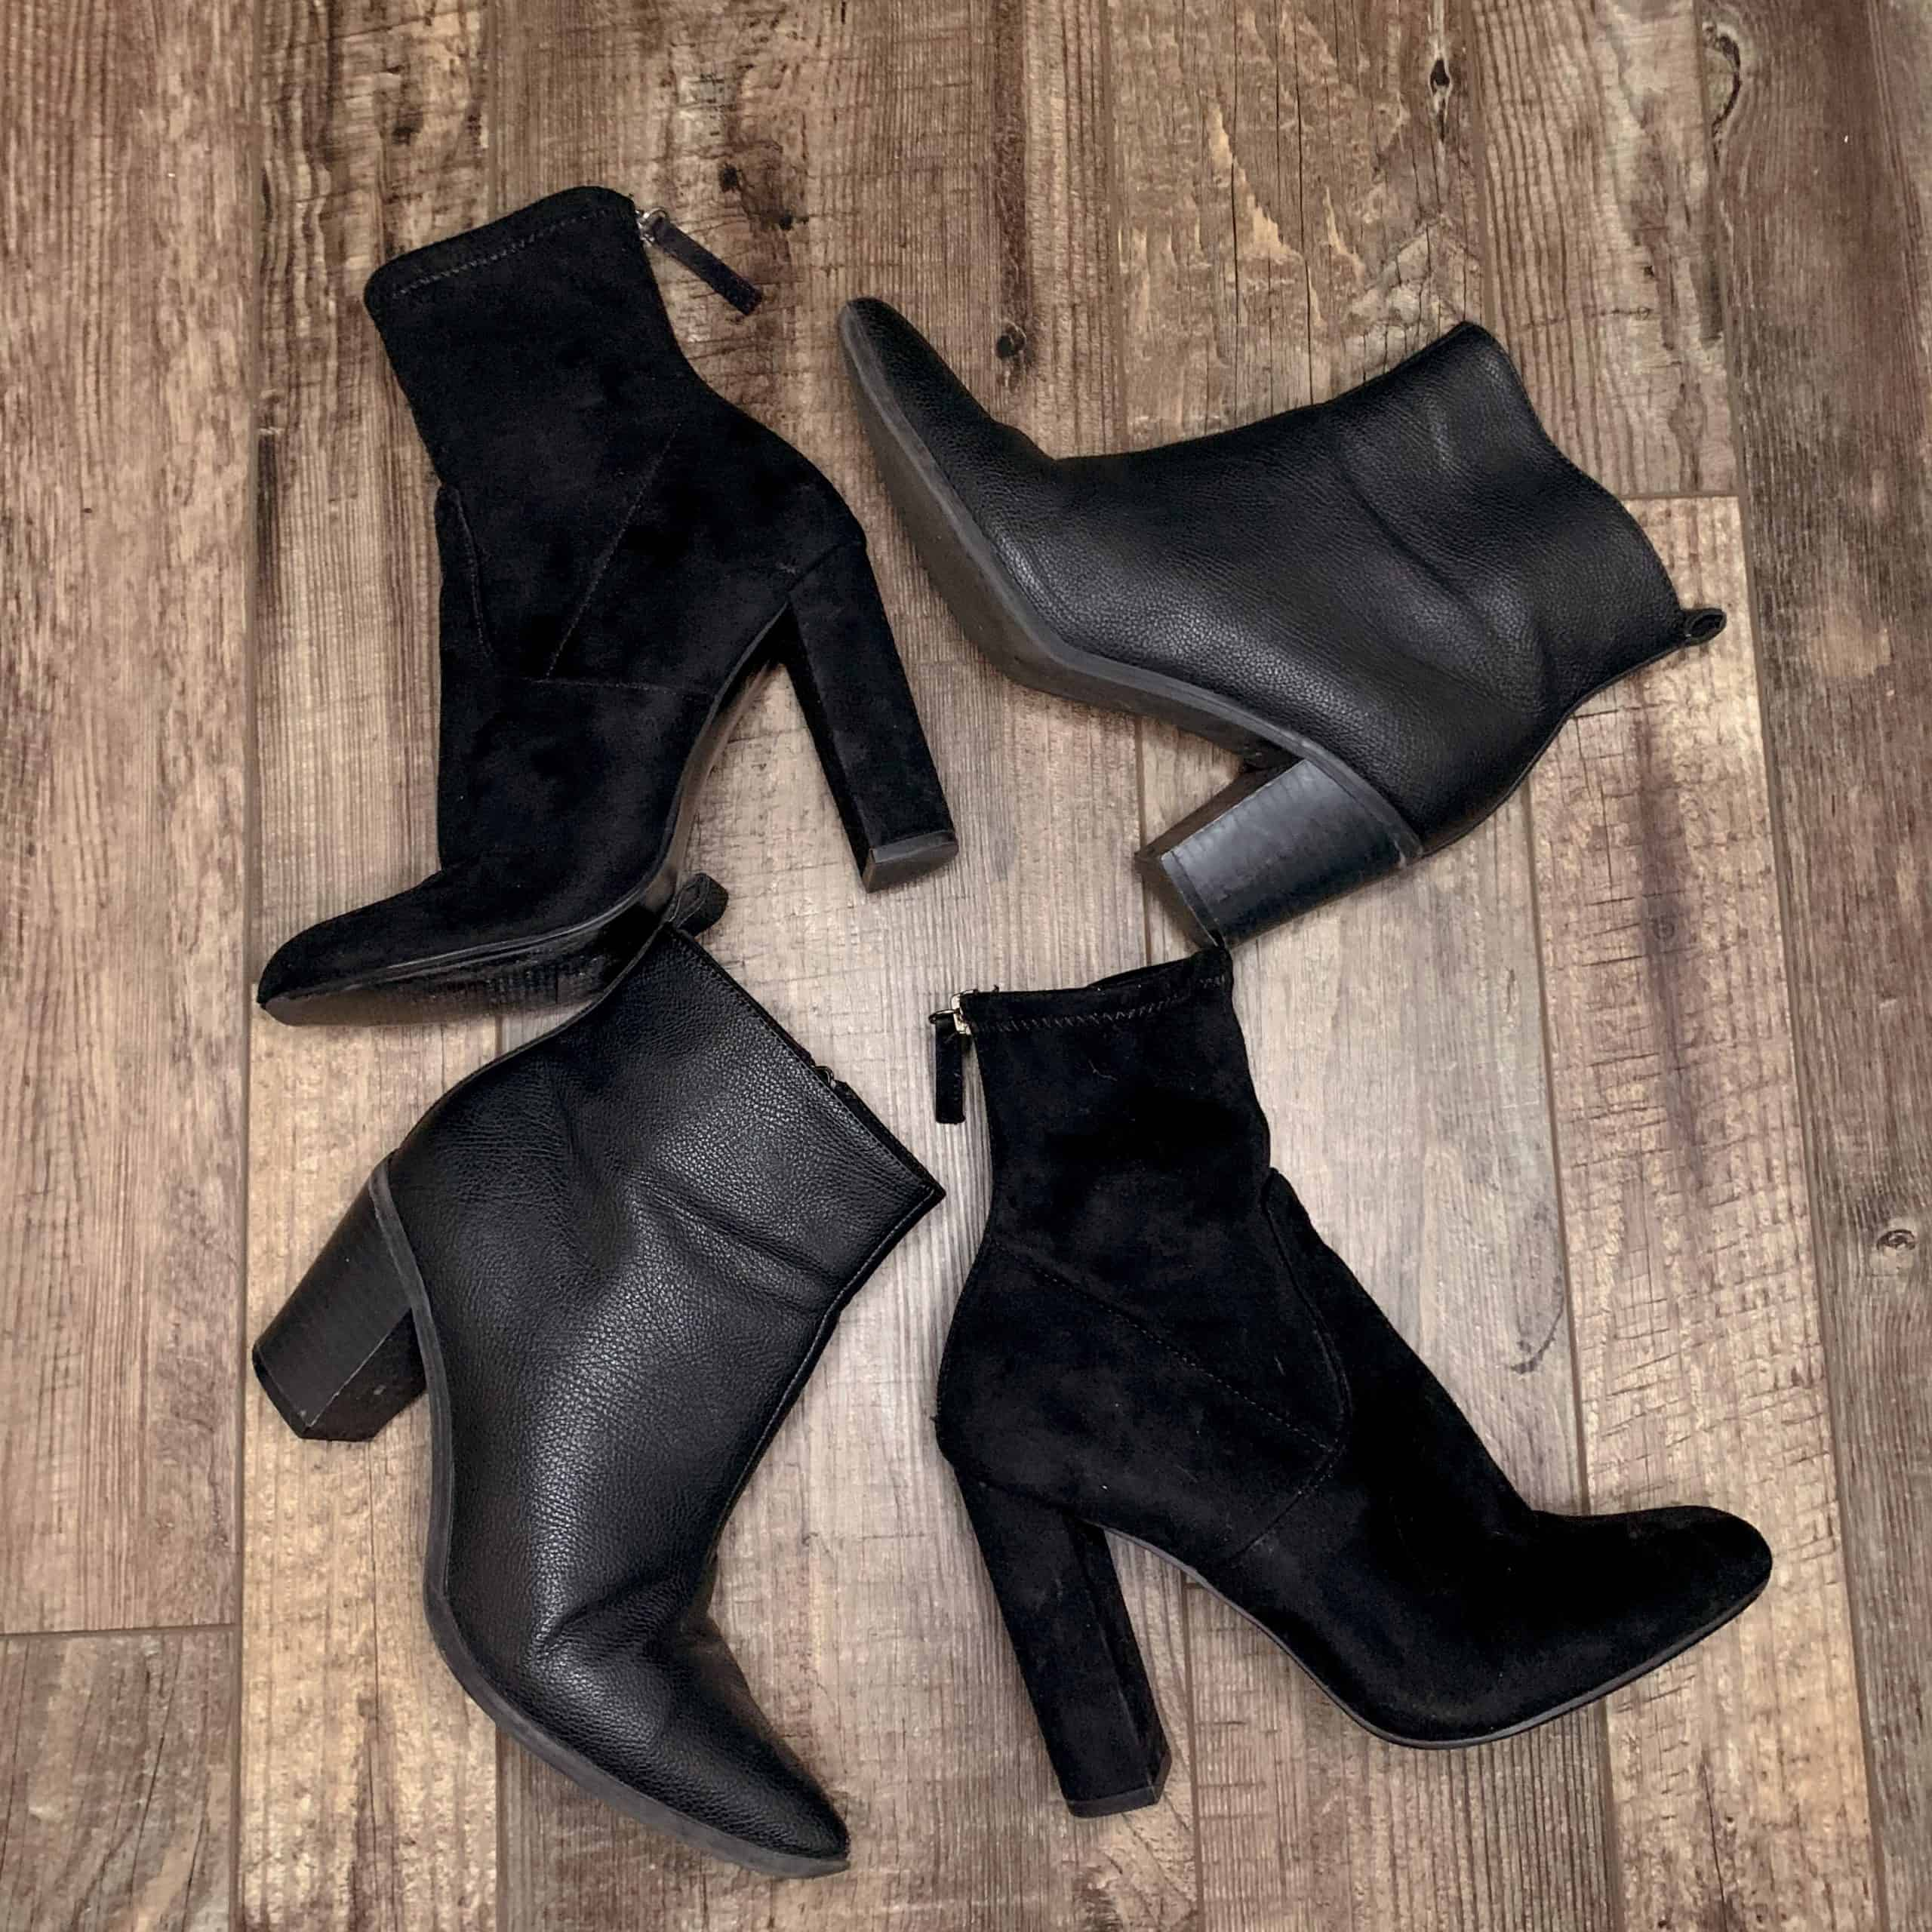 Ankle Boots For Cheap And Cute Boots For Women Under $100